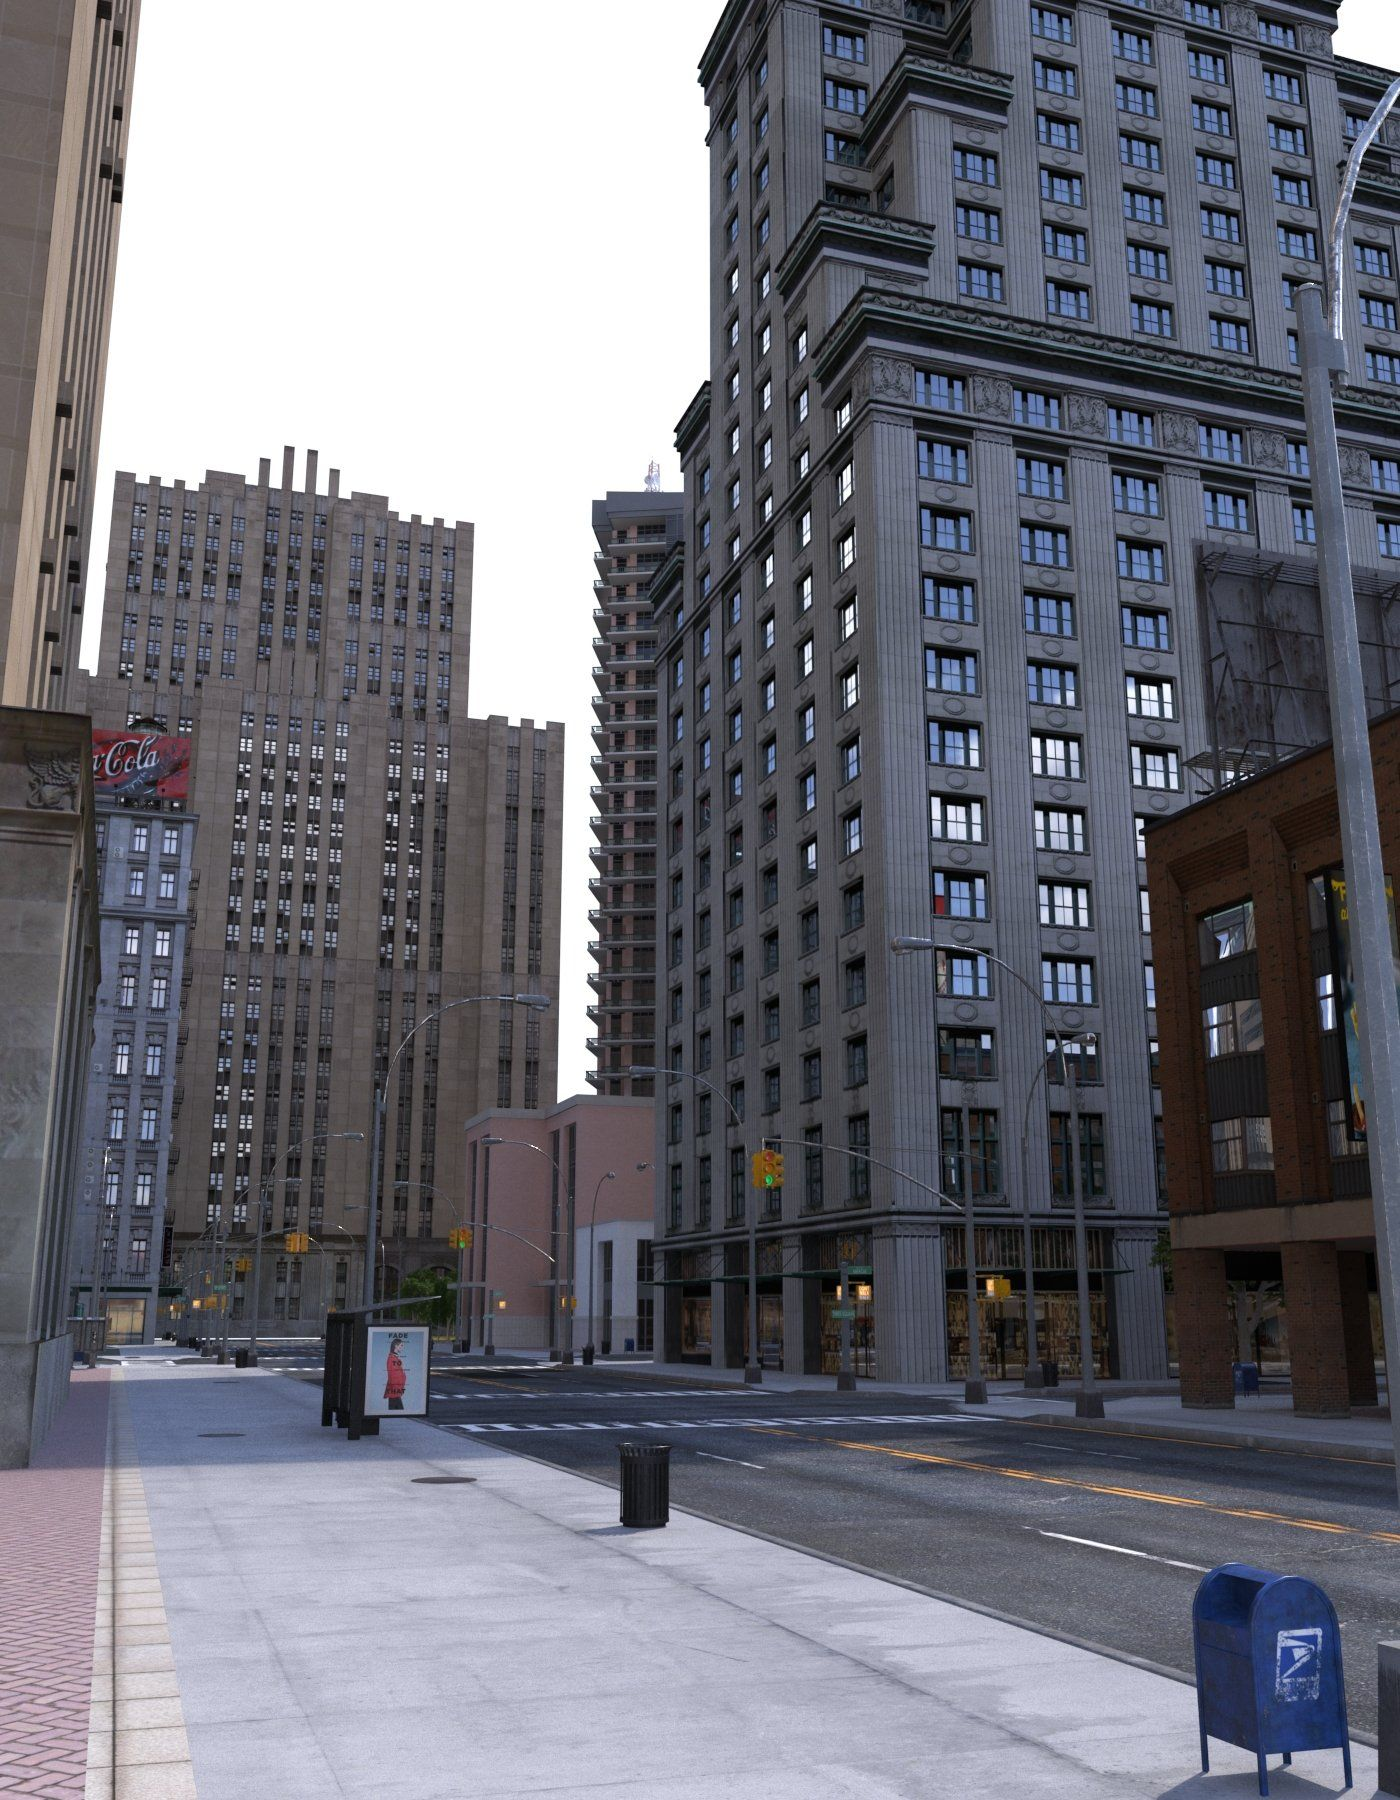 Metropolis City Block 3d Vr Ar City Block Metropolis City